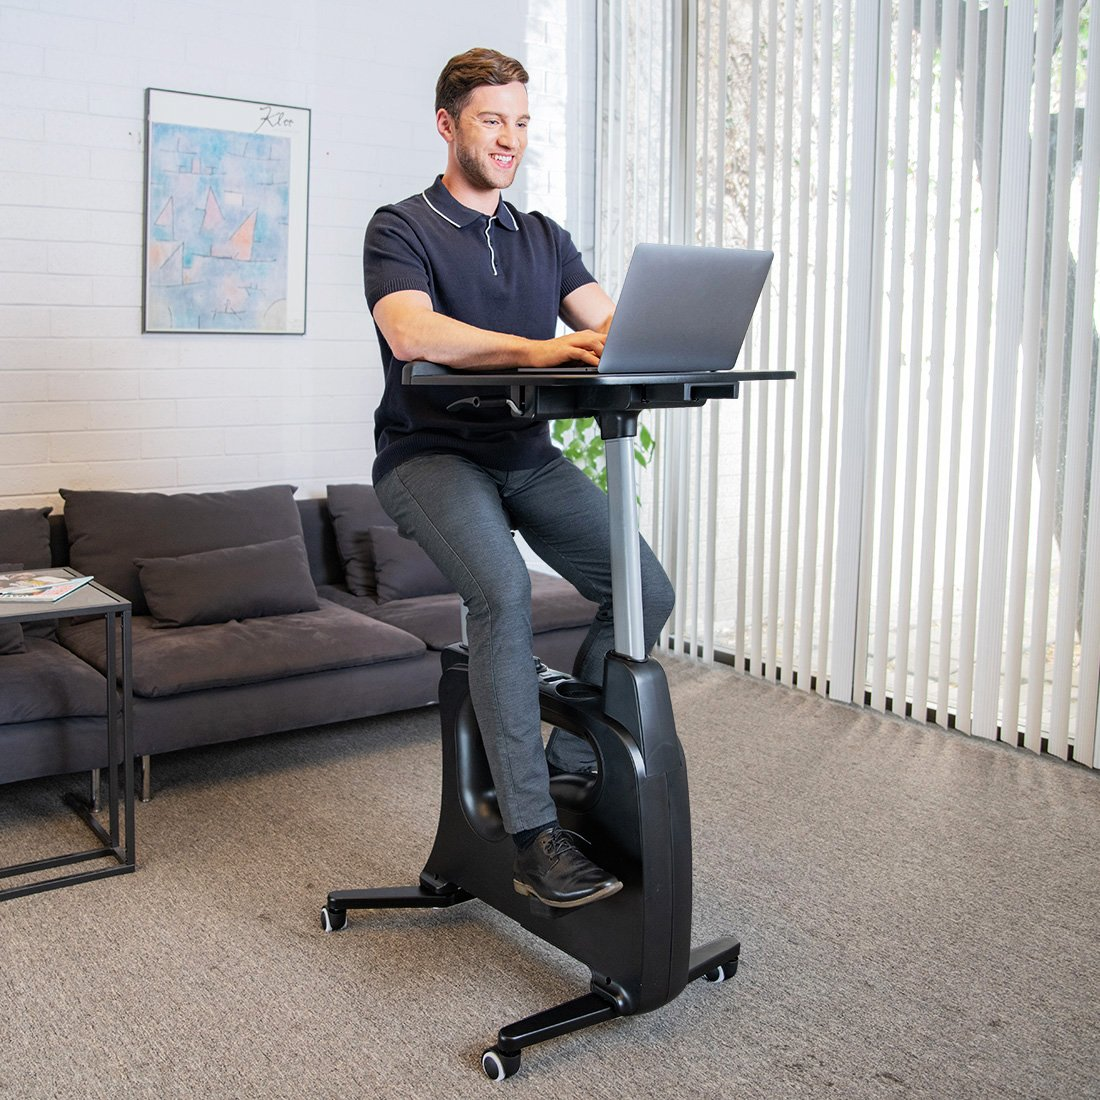 FLEXISPOT Home Office Upright Stationary Fitness Exercise Cycling Bike Height Adjustable Standing Desk - Deskcise Pro Black by FLEXISPOT (Image #2)